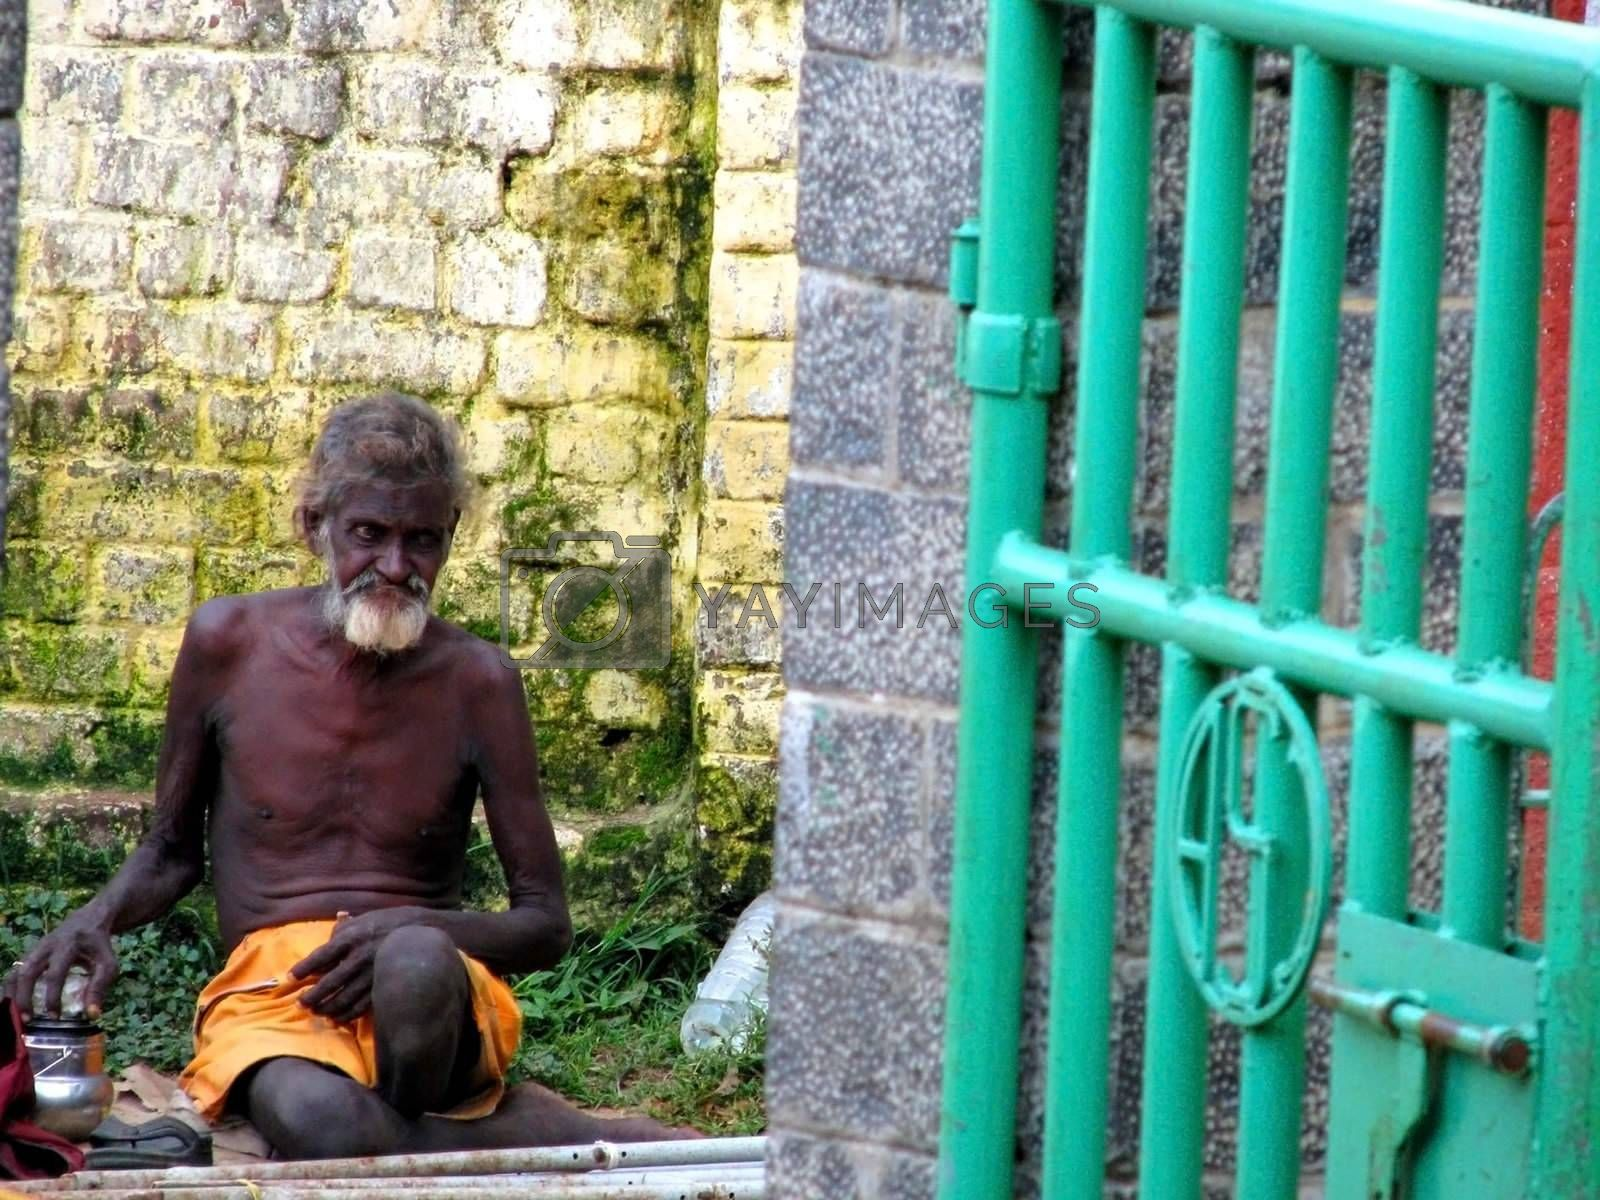 An elderly man in India waits at a gate entry.